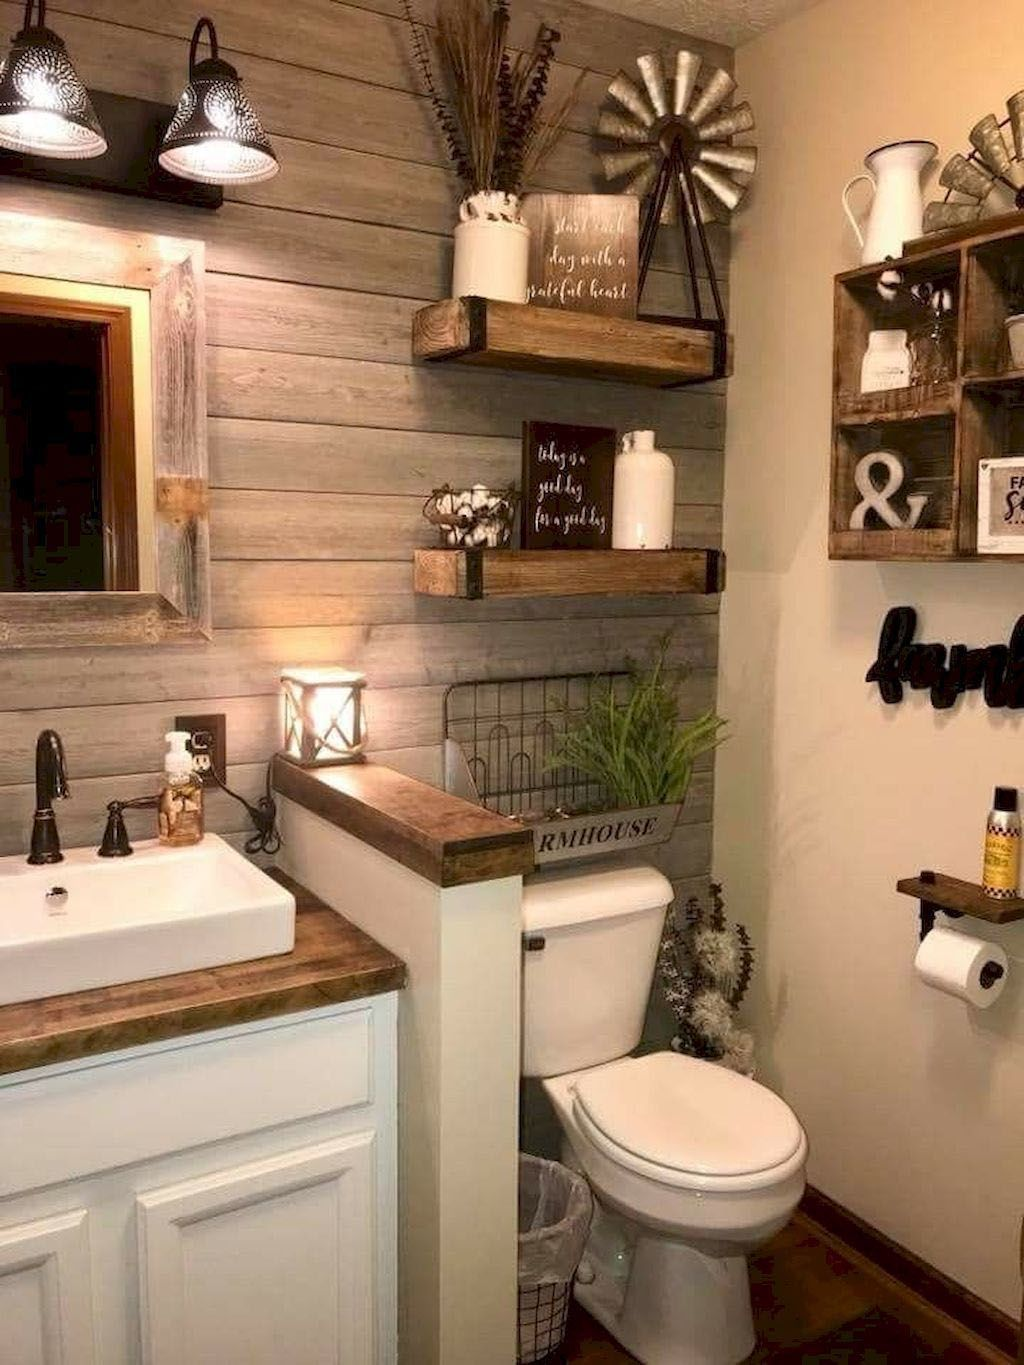 Fresh Bathroom Paint Color Ideas With Oak Cabinets Just On Dandjhome Com Bathroomvcabinets Bathrooms Remodel Small Bathroom Remodel Farmhouse Bathroom Decor